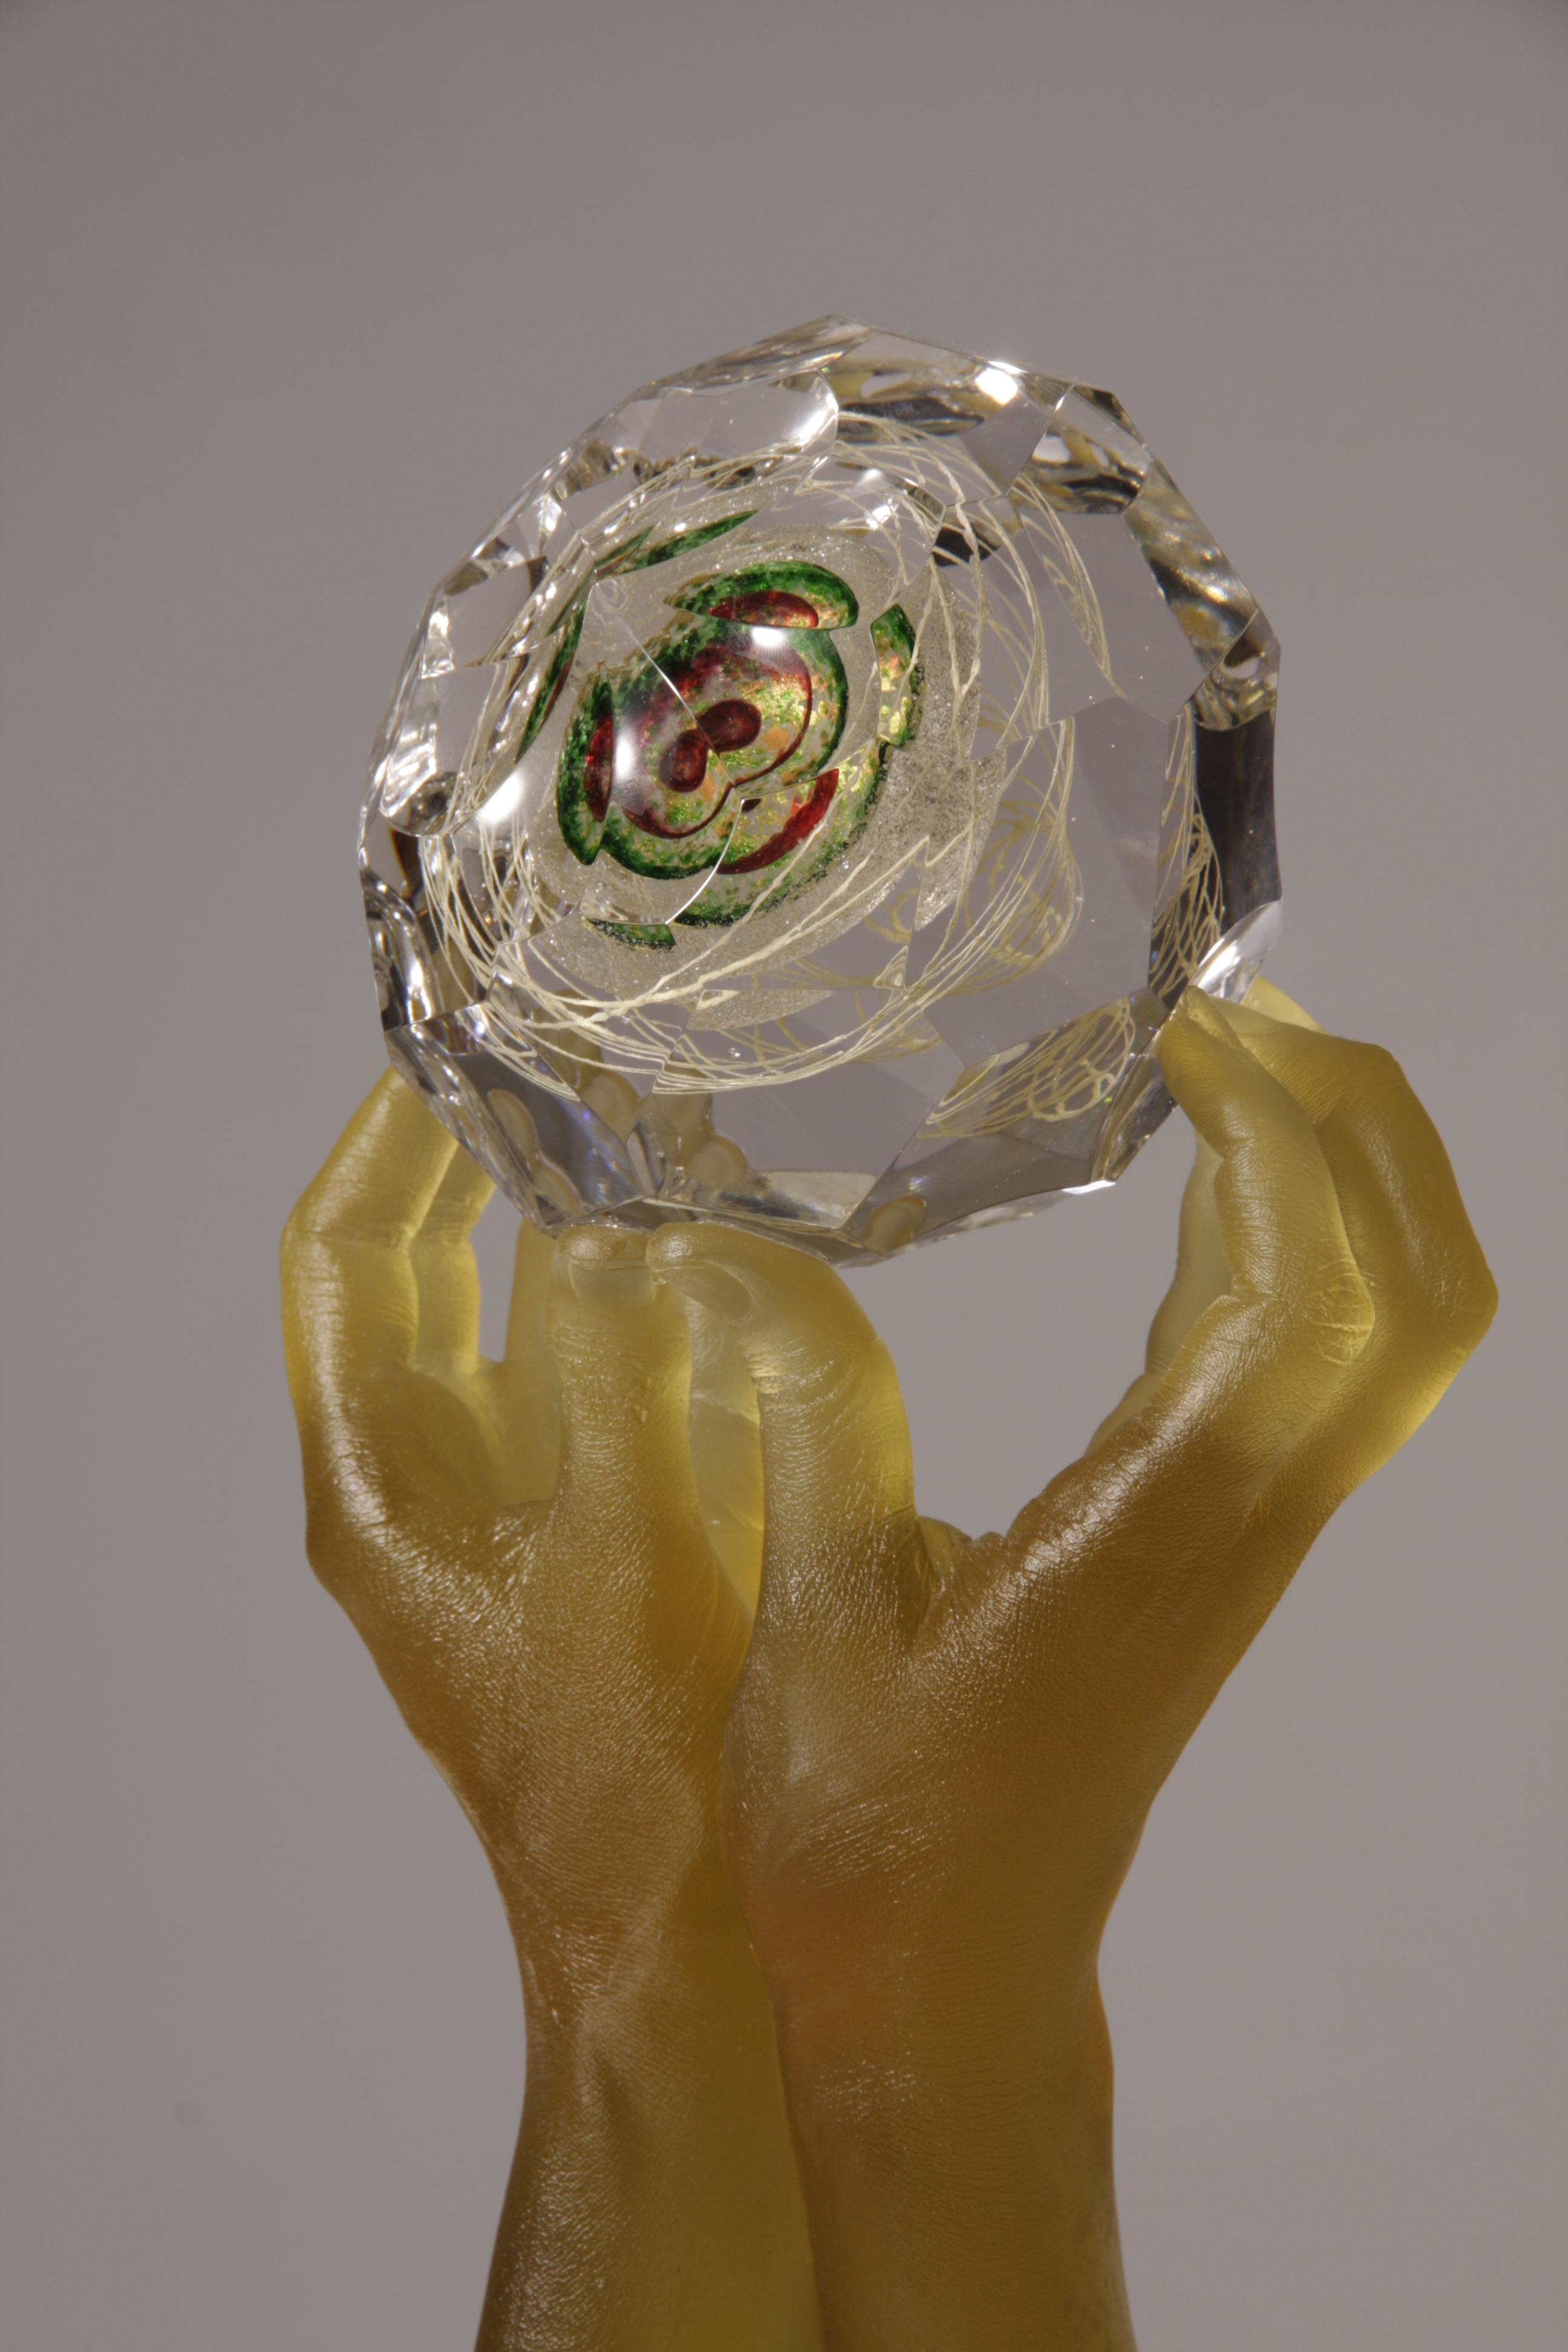 Close-up of sculpture of glass hands holding faceted glass gem, center of ruby, green, gold, and mica.